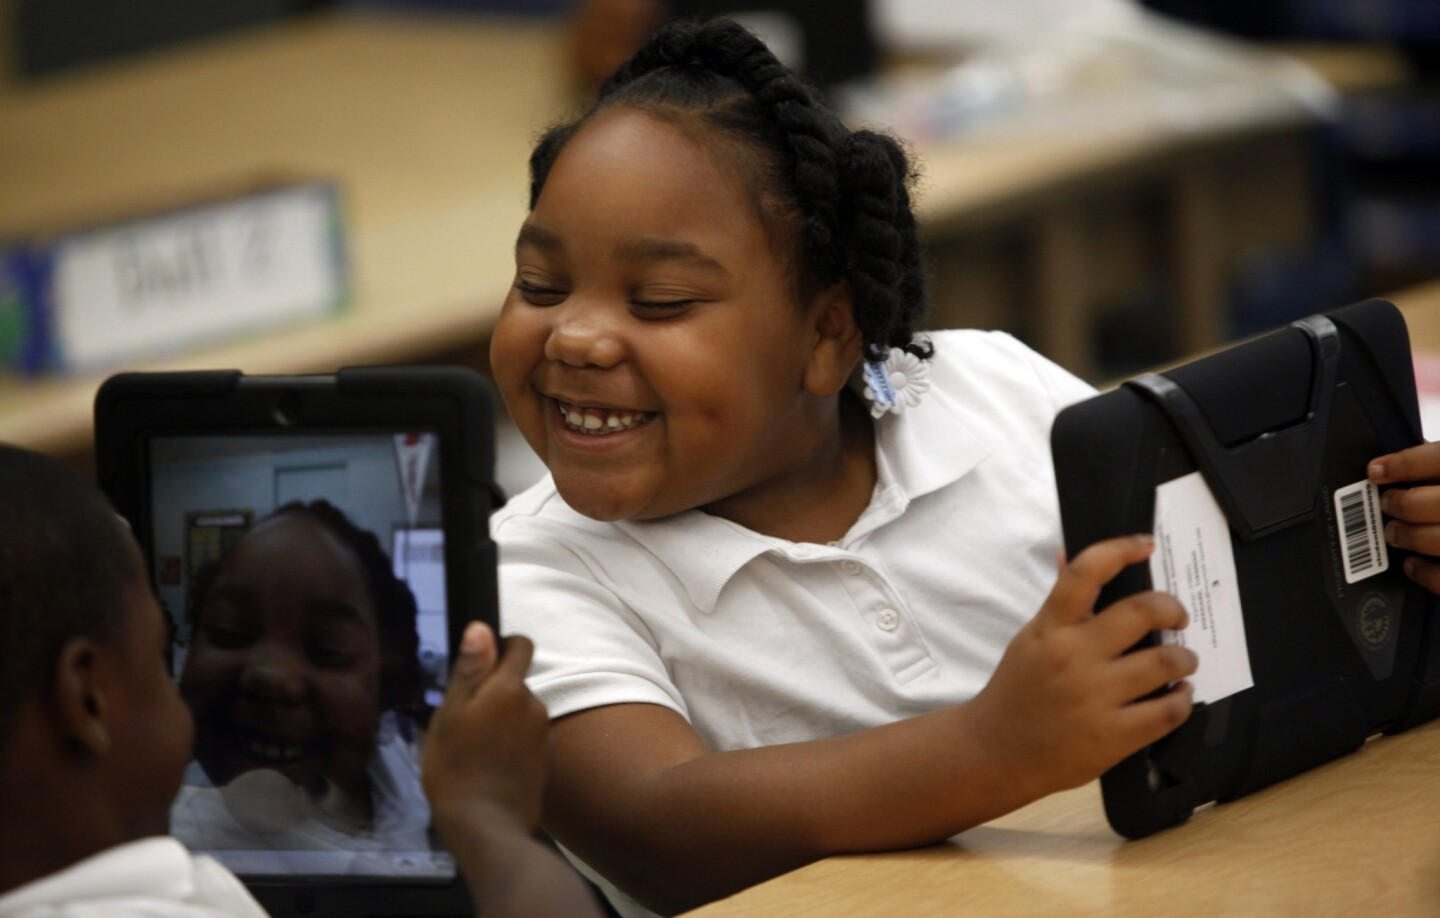 First iPads for LAUSD elementary school students